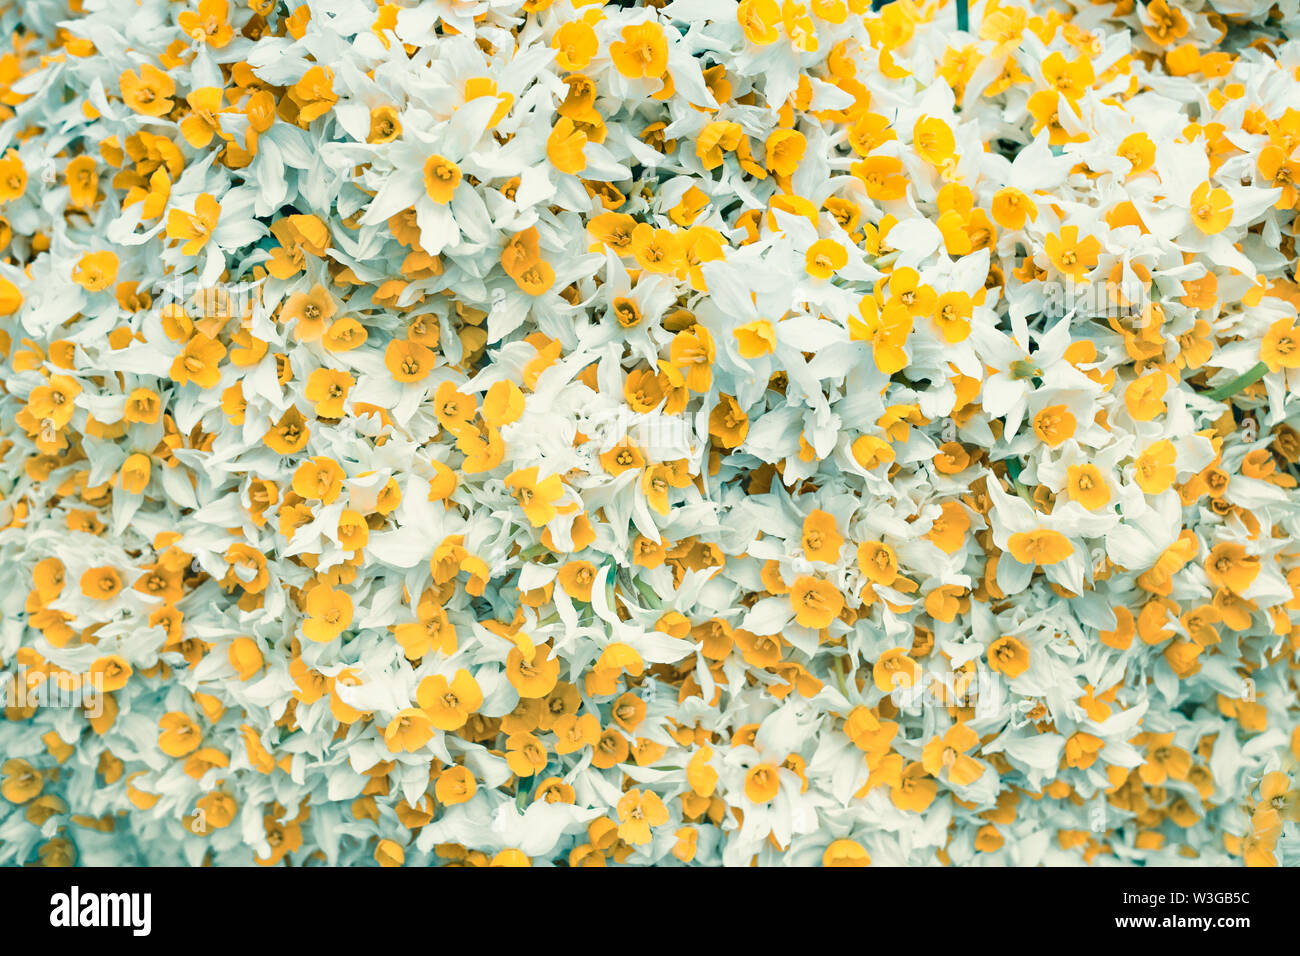 yellow flowers with white leaves. background image with yellow and white colored flowers - Stock Image